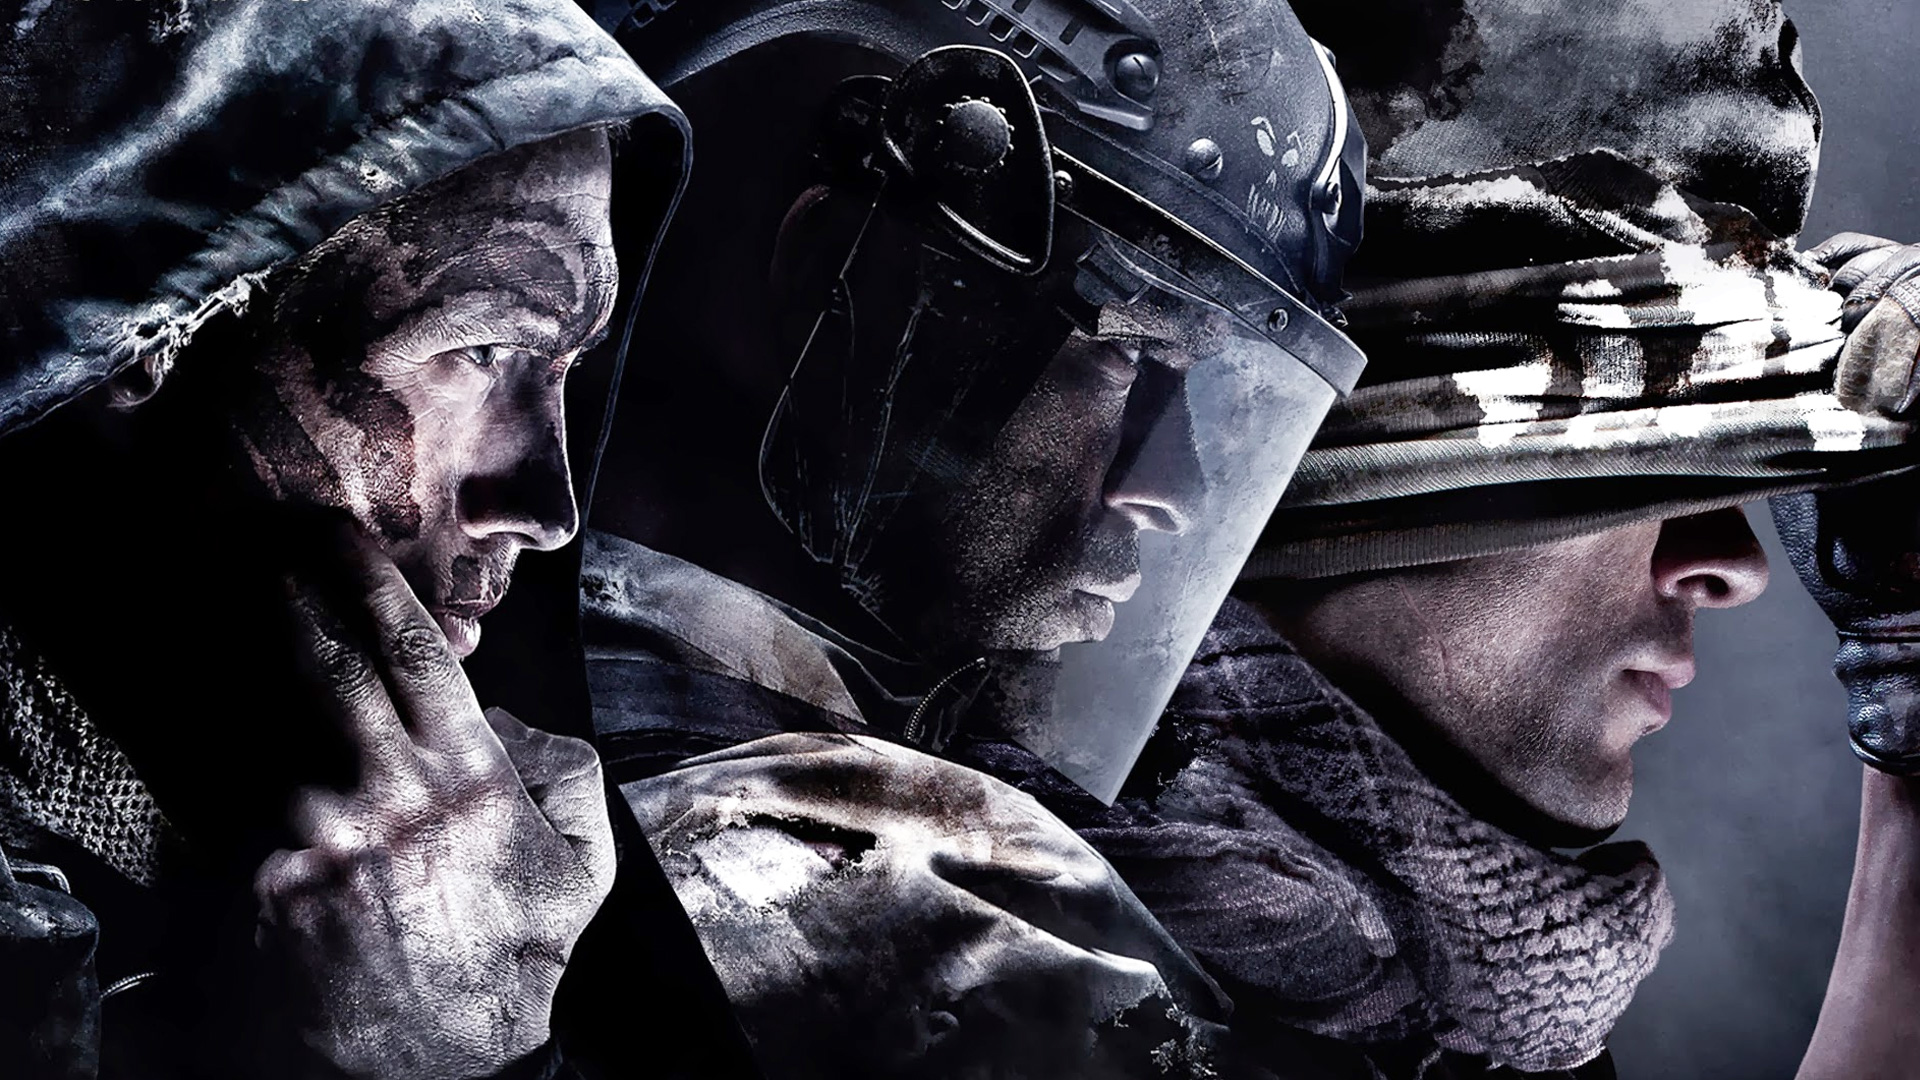 Call of Duty Ghosts Wallpapers 1920x1080 in HD Call of Duty Ghosts 1920x1080